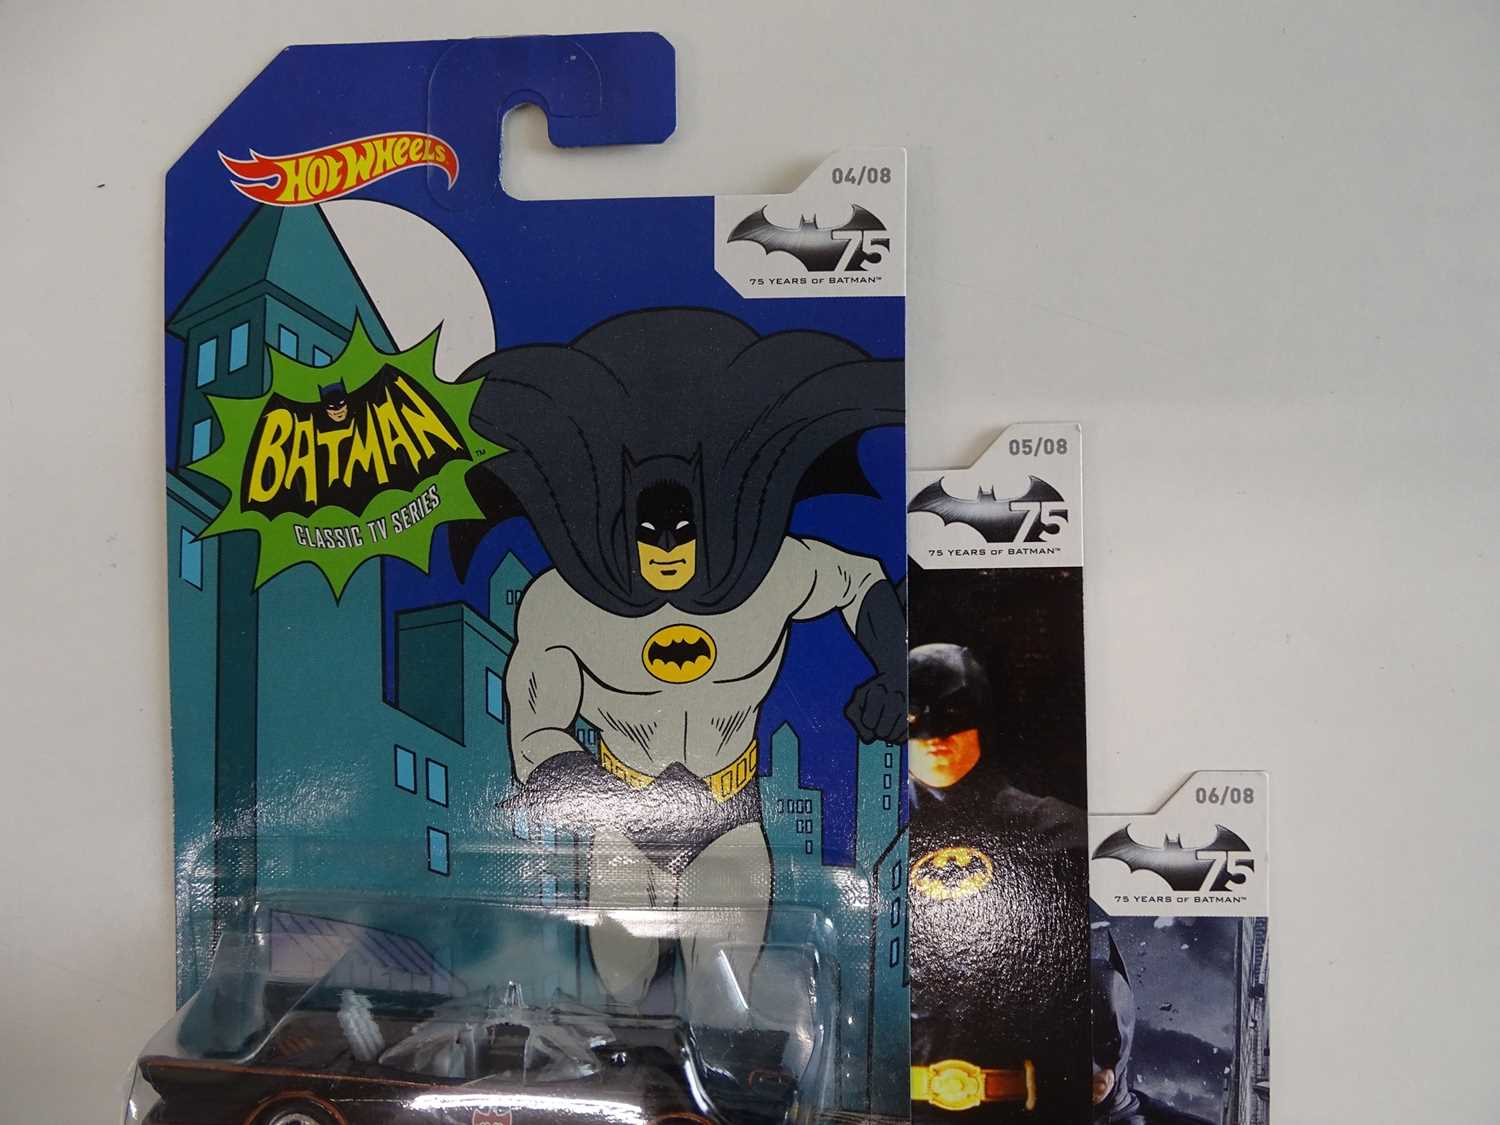 BATMAN LOT (9 in Lot) - Selection of various Batmobiles (8) from Hot Wheels all presented sealed - Image 6 of 7